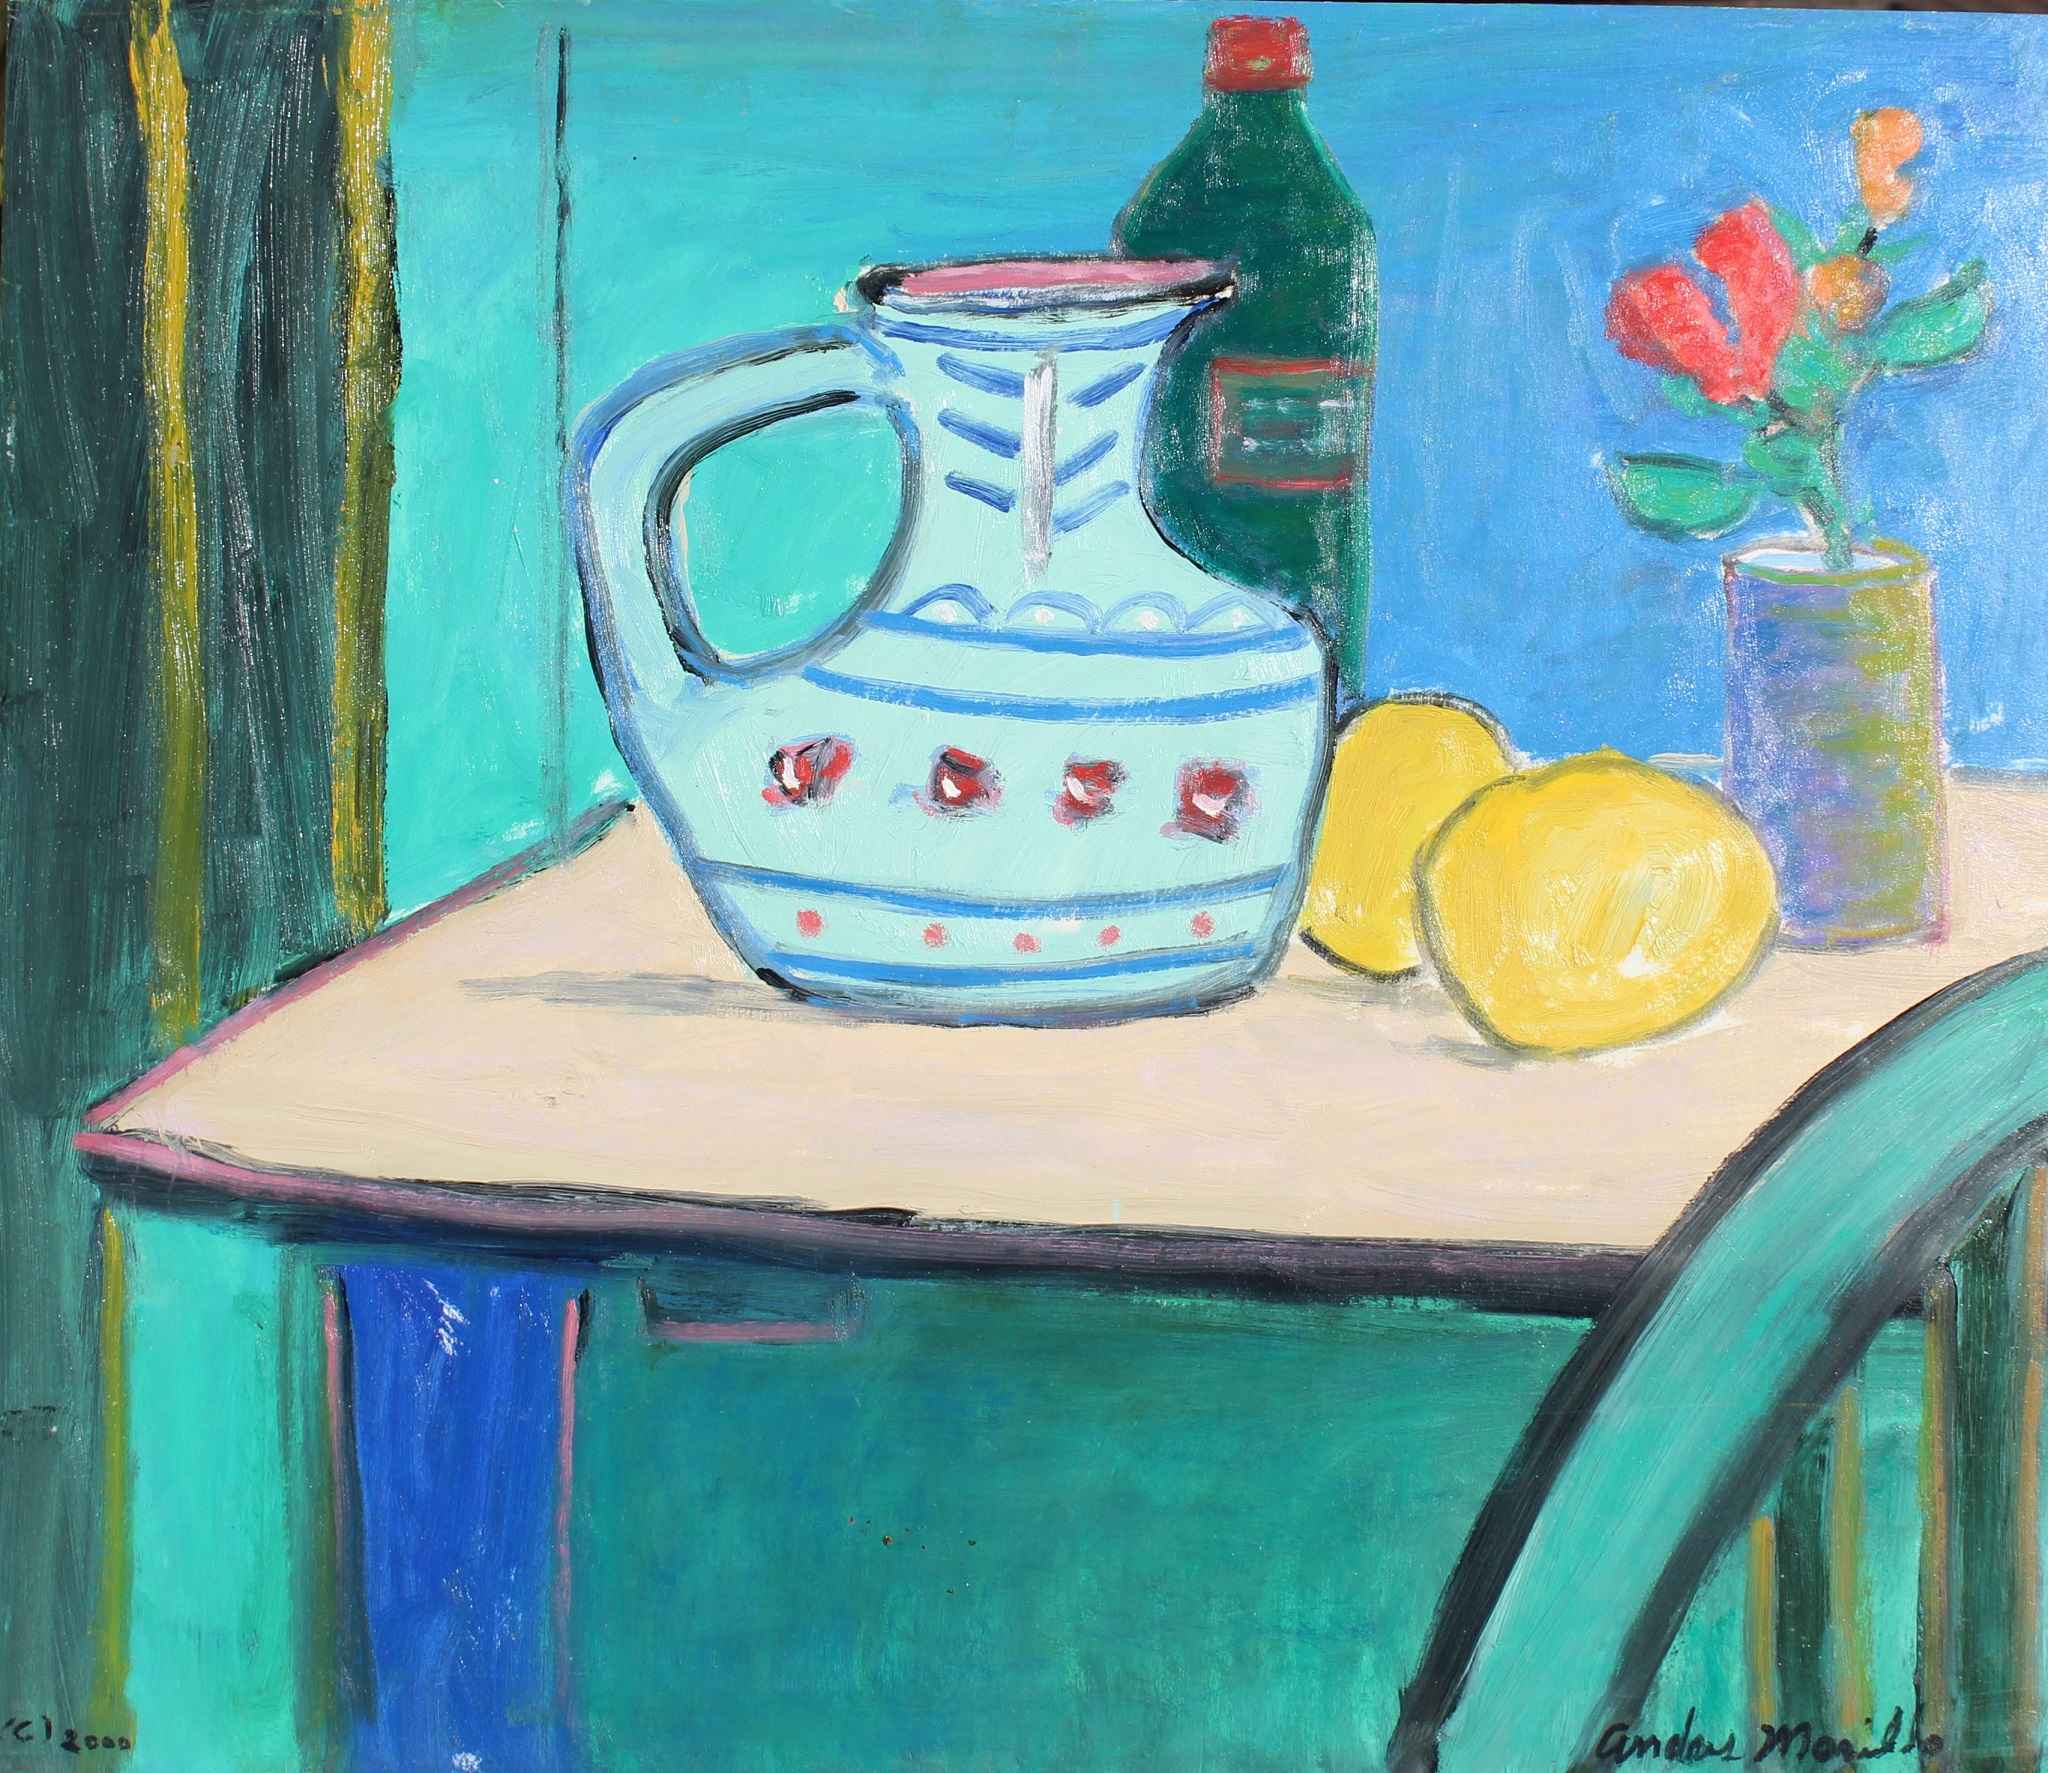 Table With Lemon by  Andres  Morillo - Masterpiece Online